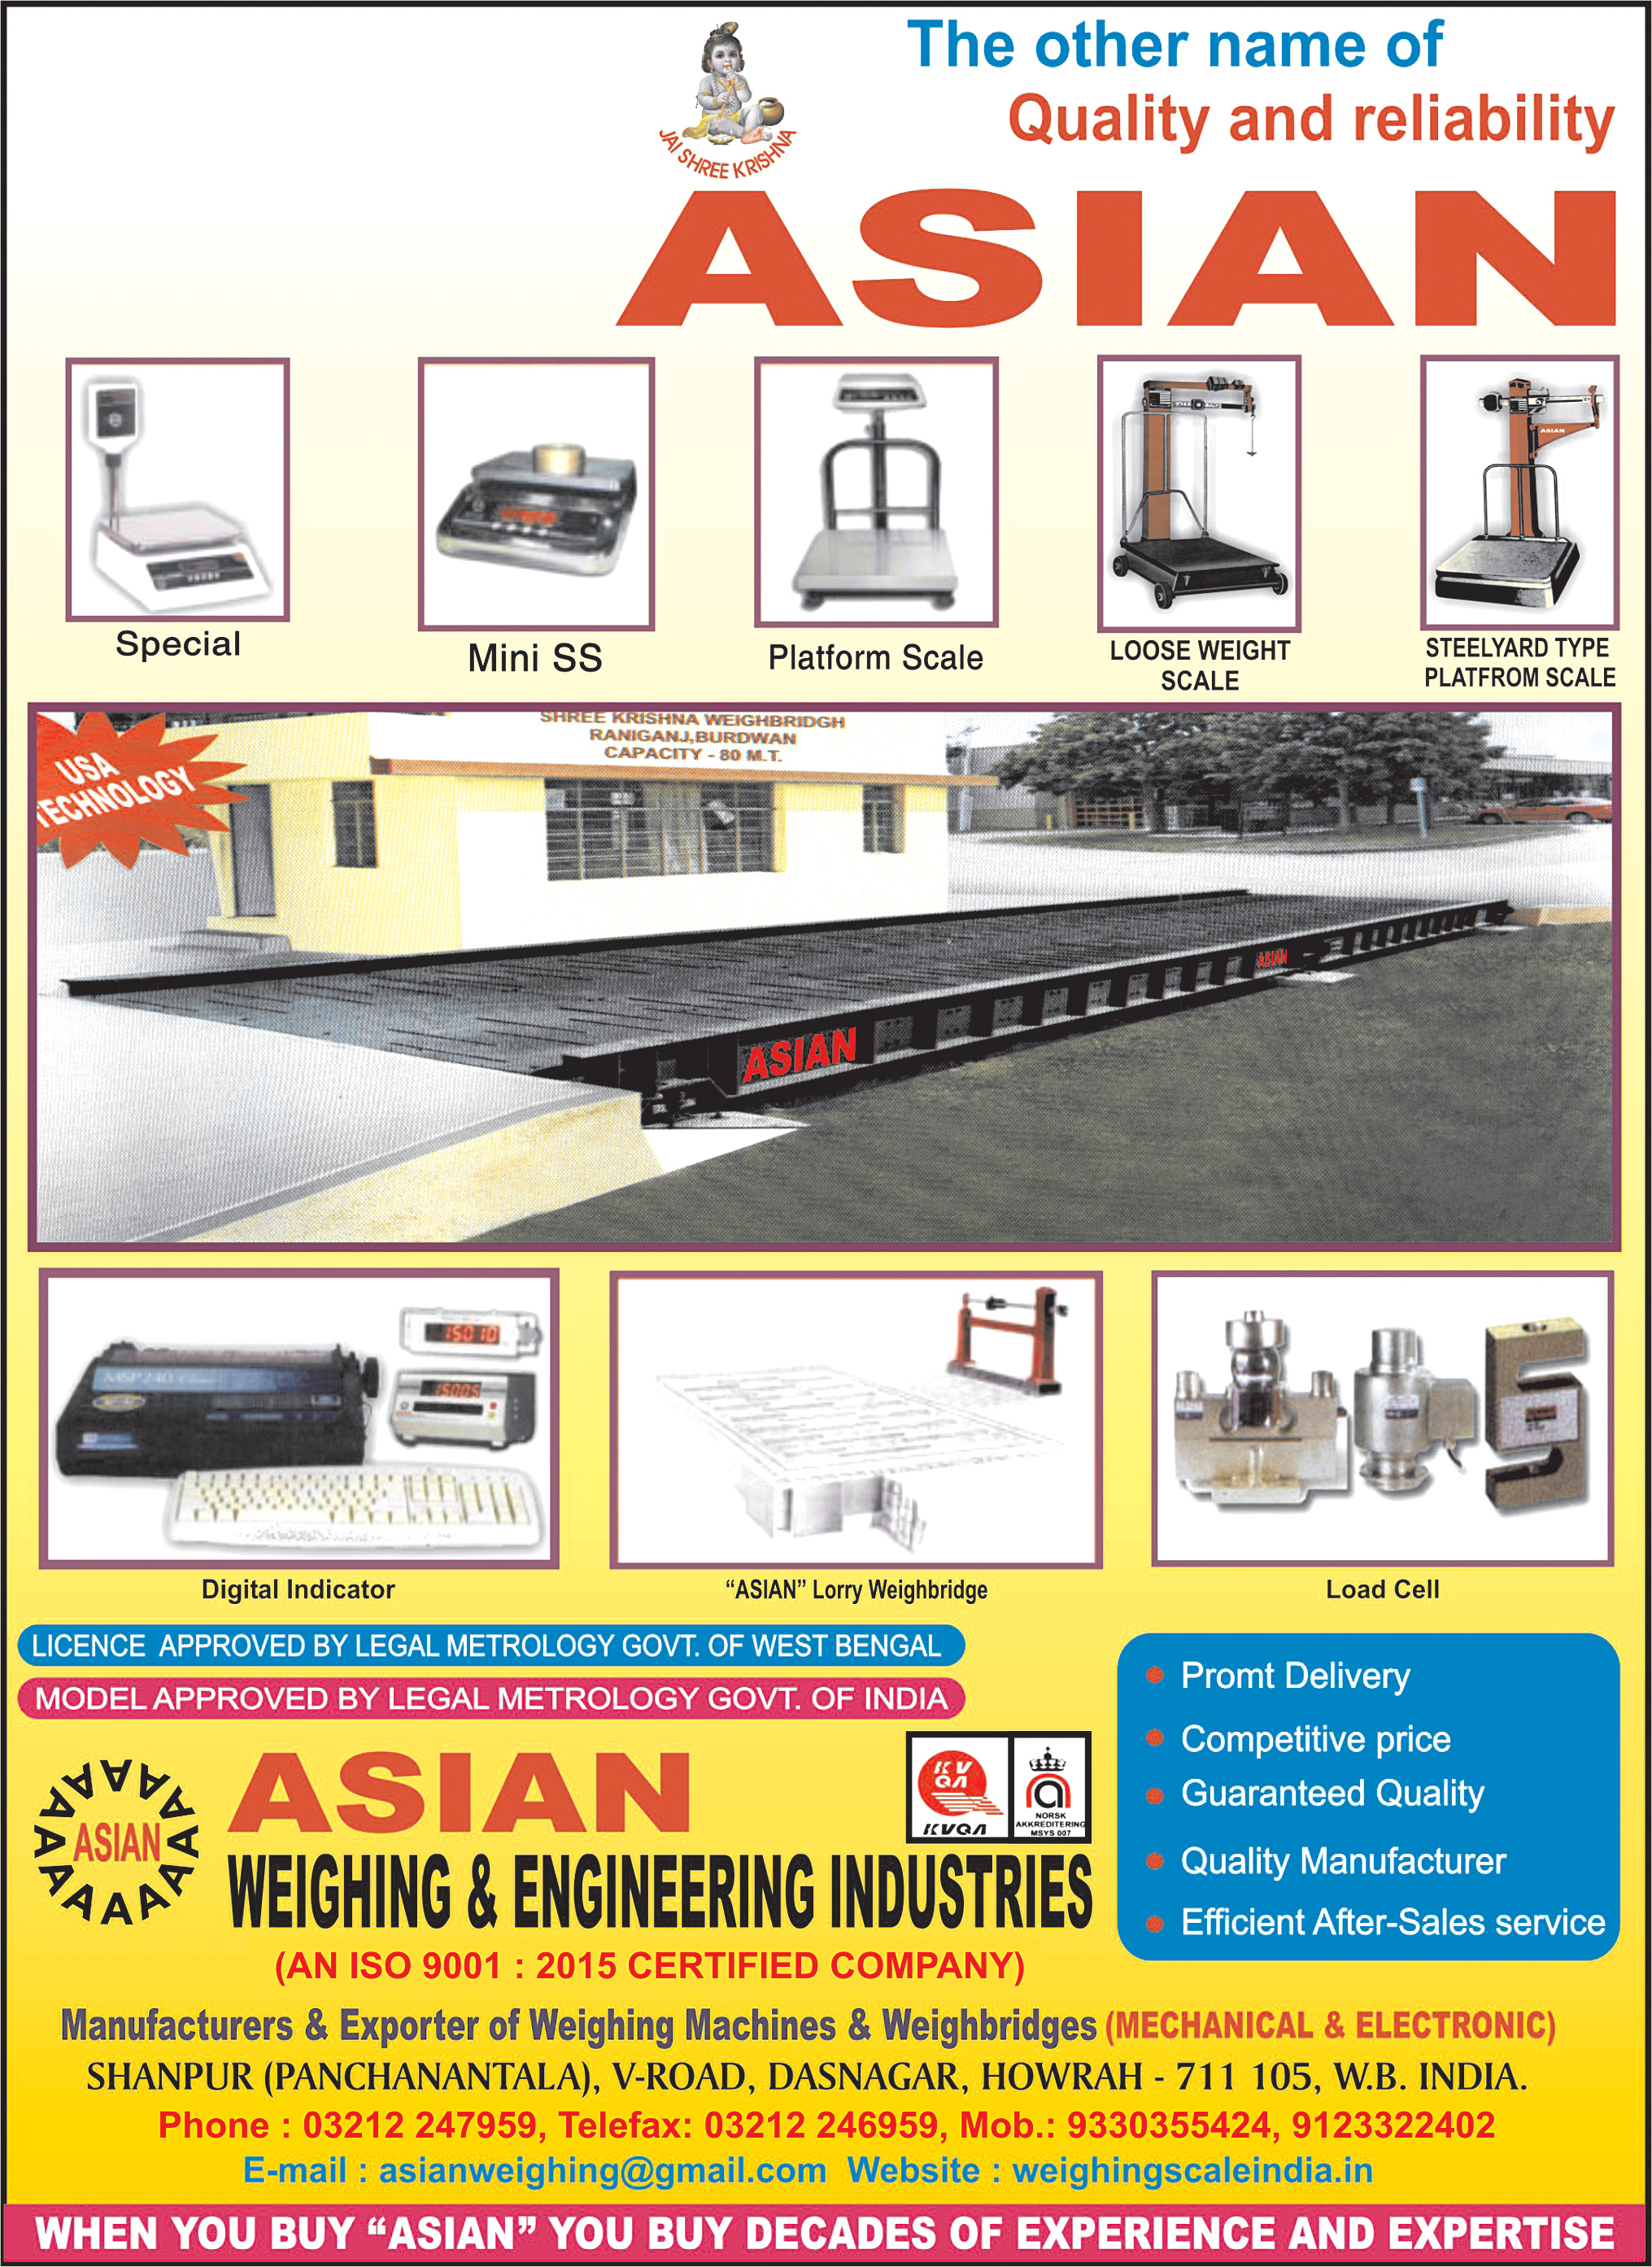 Weighing Machines, Weigh Bridges and Parts, ASIAN WEIGHING & ENGINEERING INDUSTRIES, Kolkata,  Yellow Pages, Kolkata, West Bengal